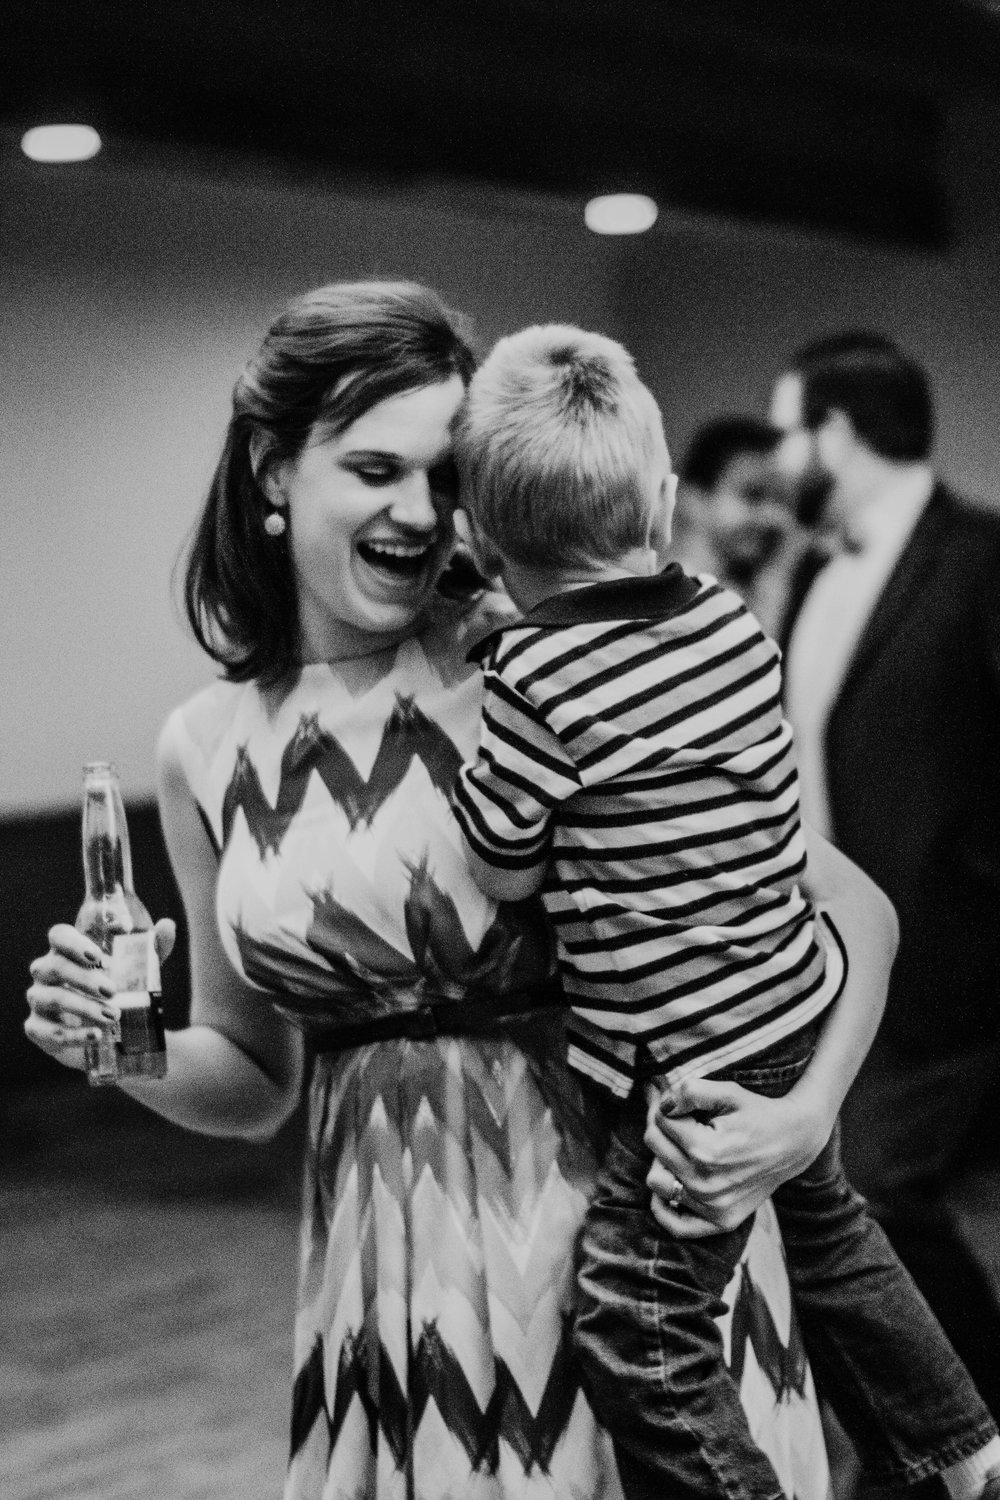 Bert & Lauren's North Kansas City Spring Wedding | Hannahill Photography | Raleigh Durham Photographer | North Carolina Wedding Photography | Family Photographer | Wedding photographer | sweet mom and son dance during the reception in black and white